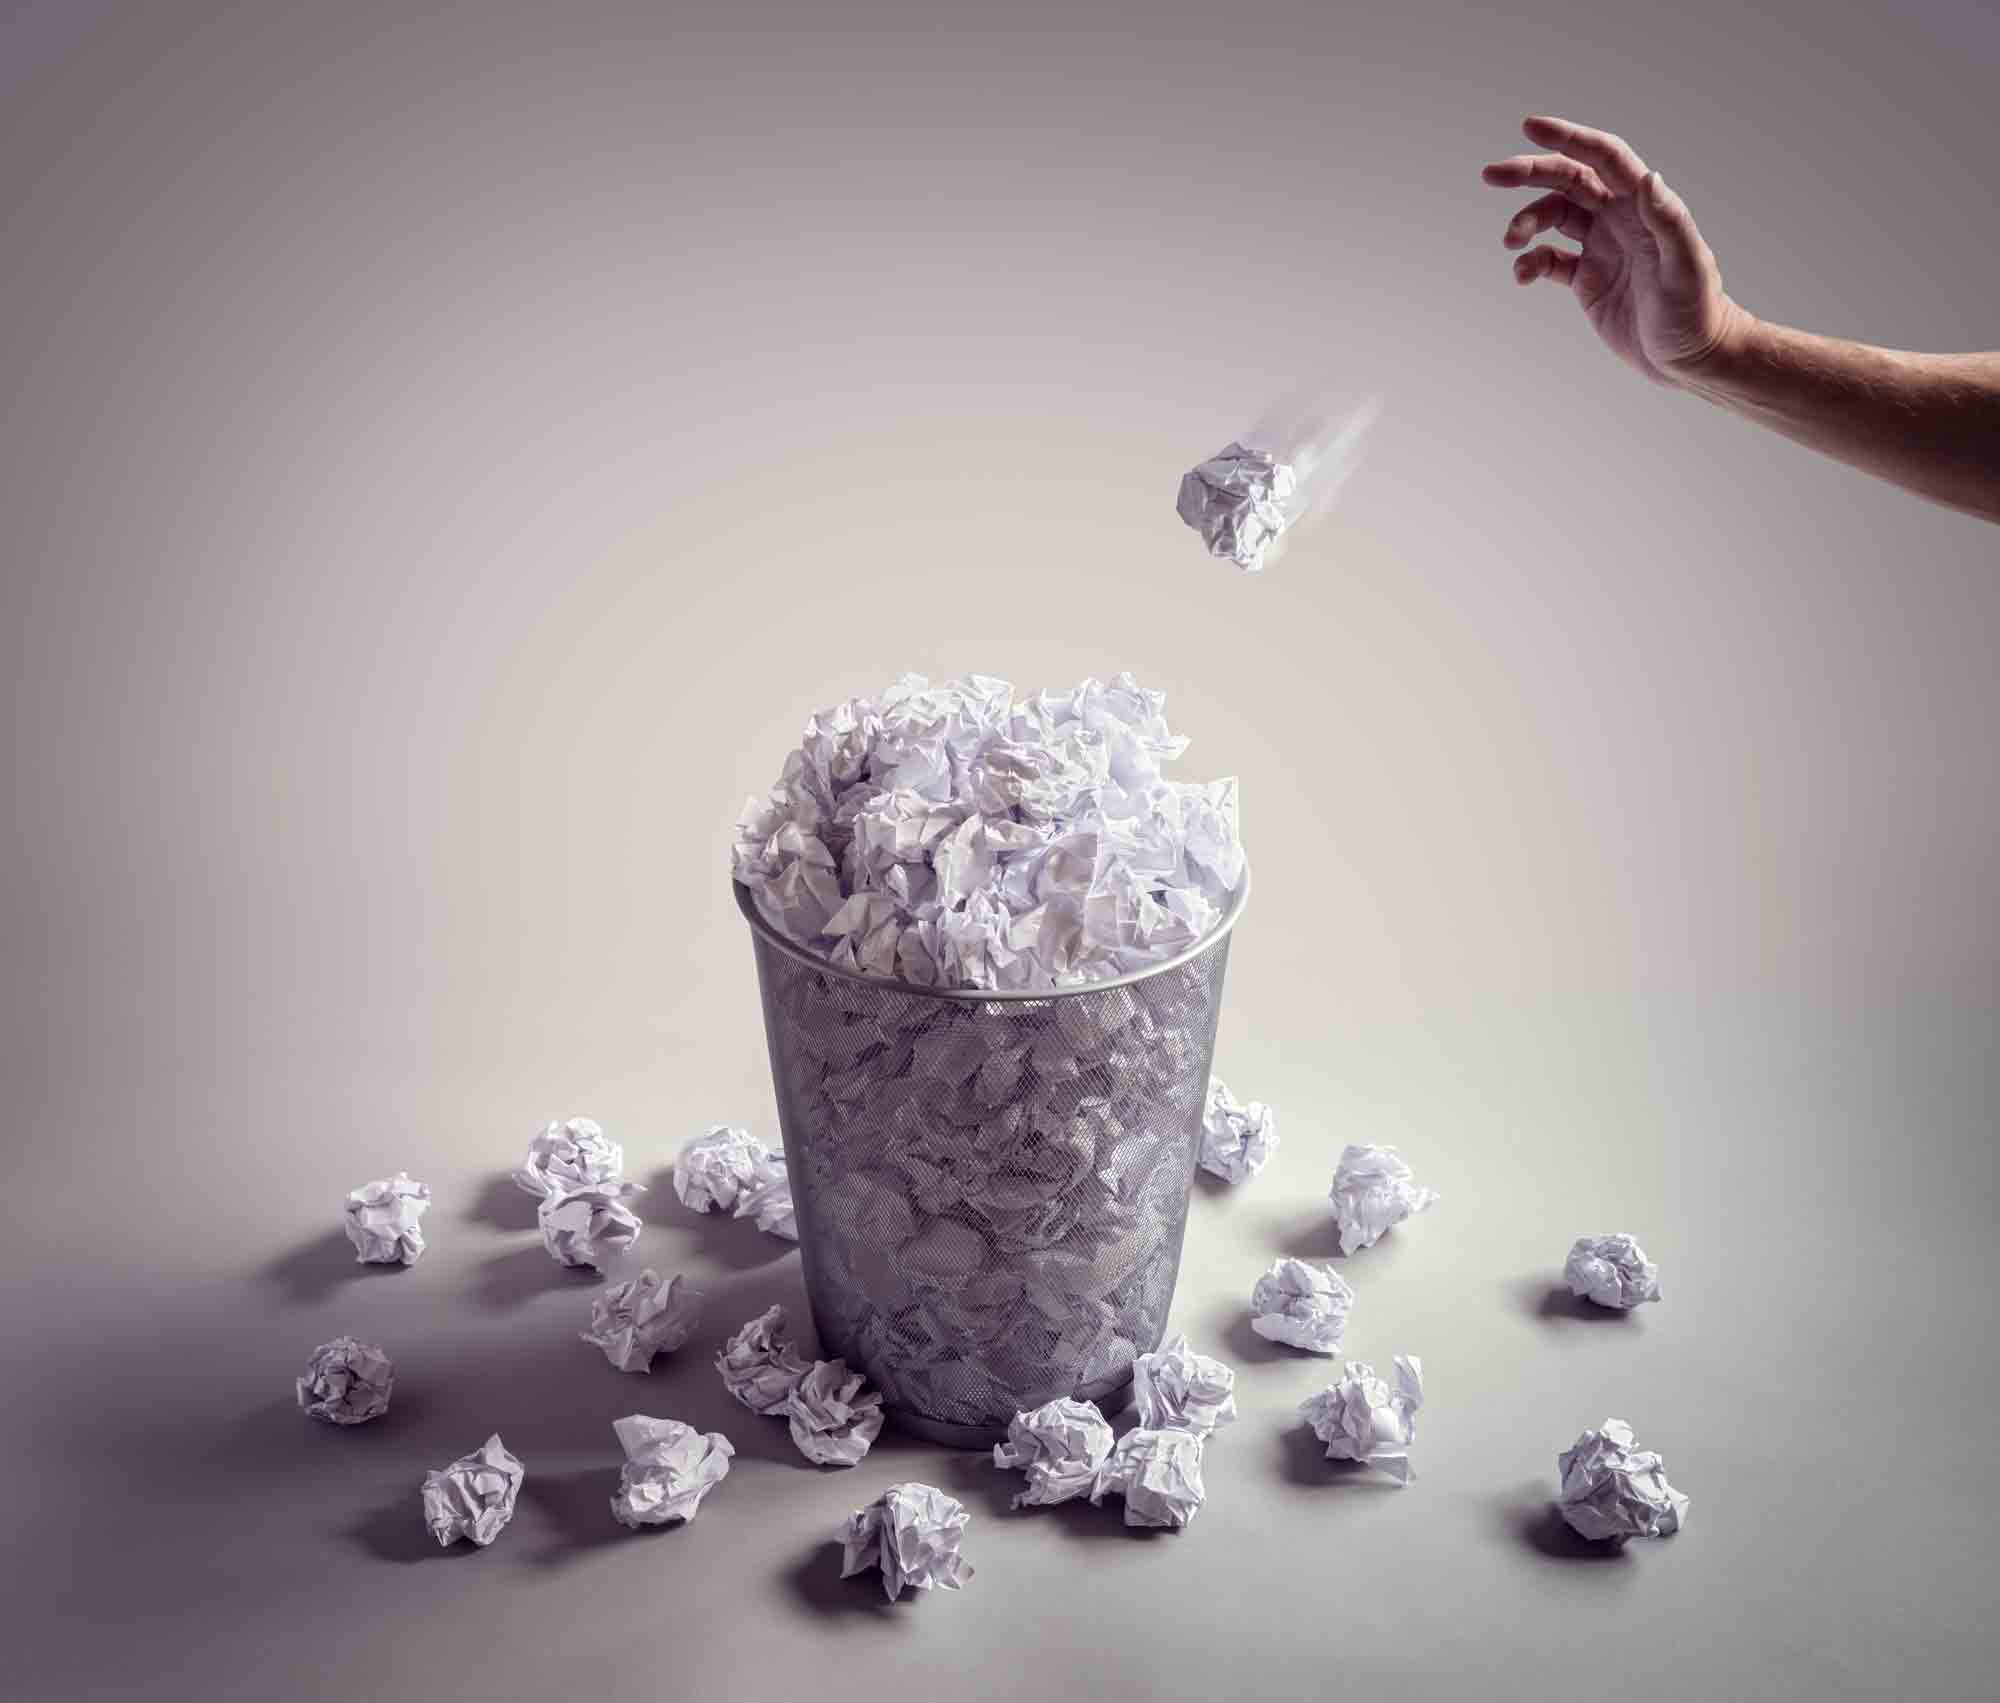 Private Document Shredding